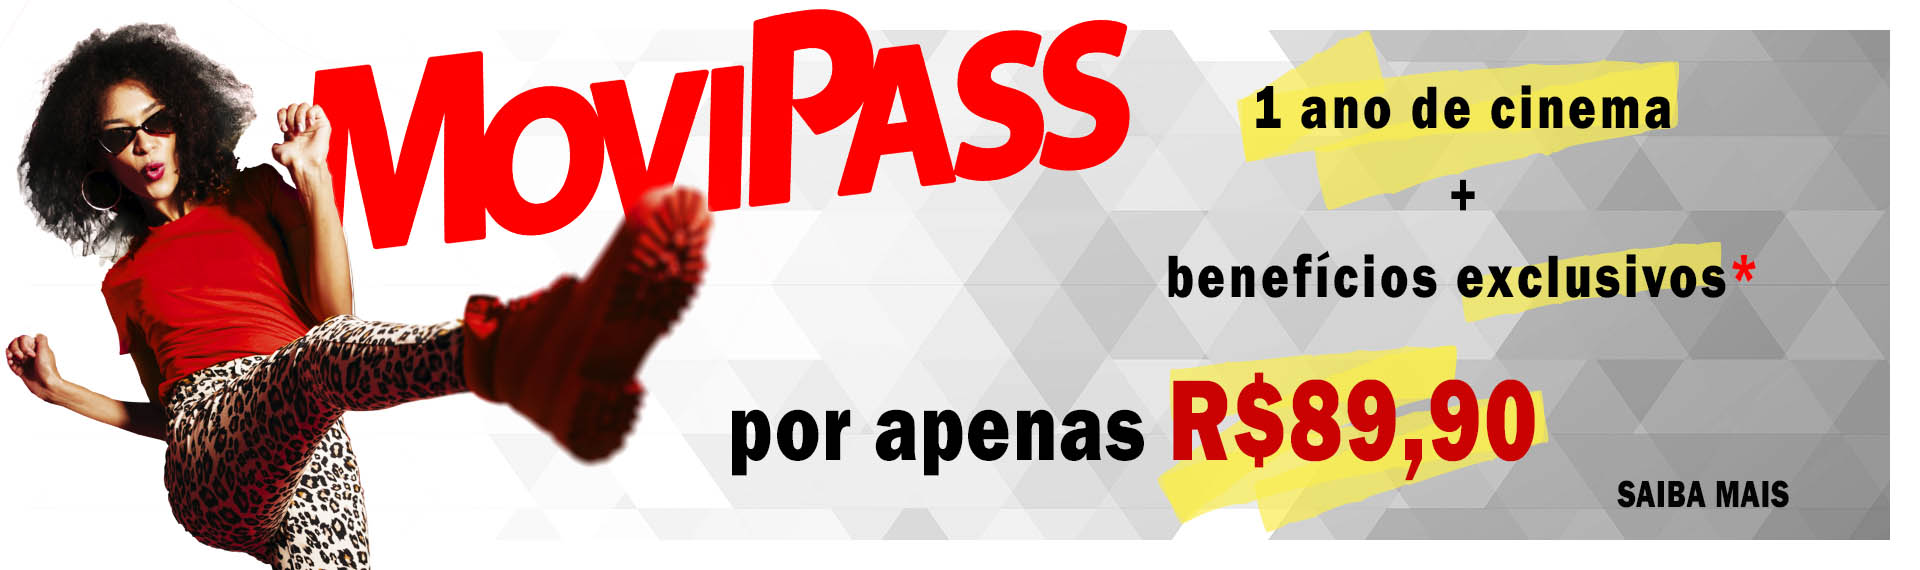 MOVIPASS_BANNER_SITE